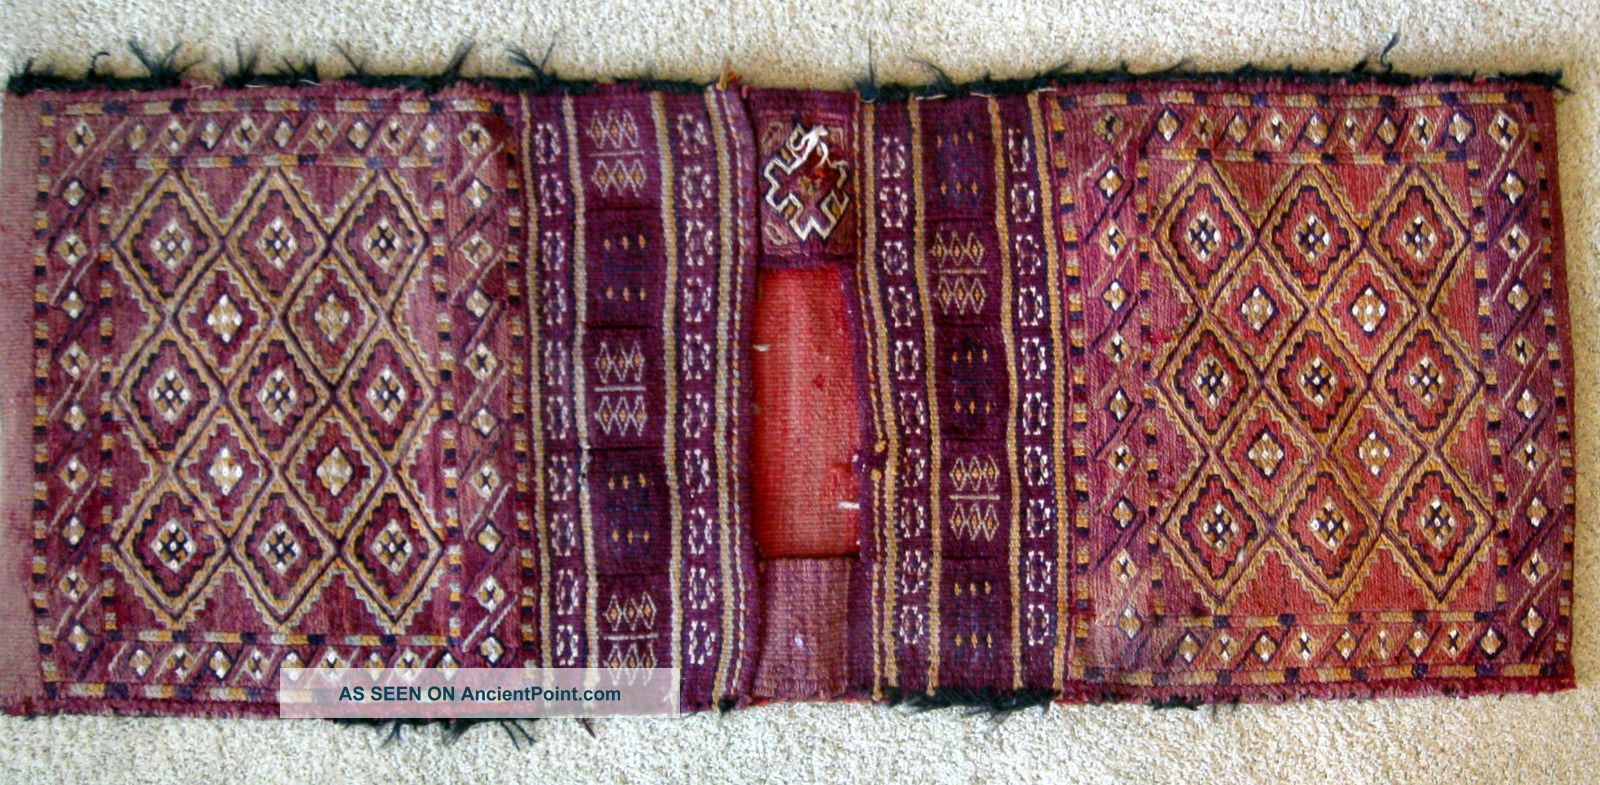 Antique Vtg Tribal Hand Knotted Wool Double Saddle Bag Mid East Camel Bag Rug Small (3x5 and smaller) photo